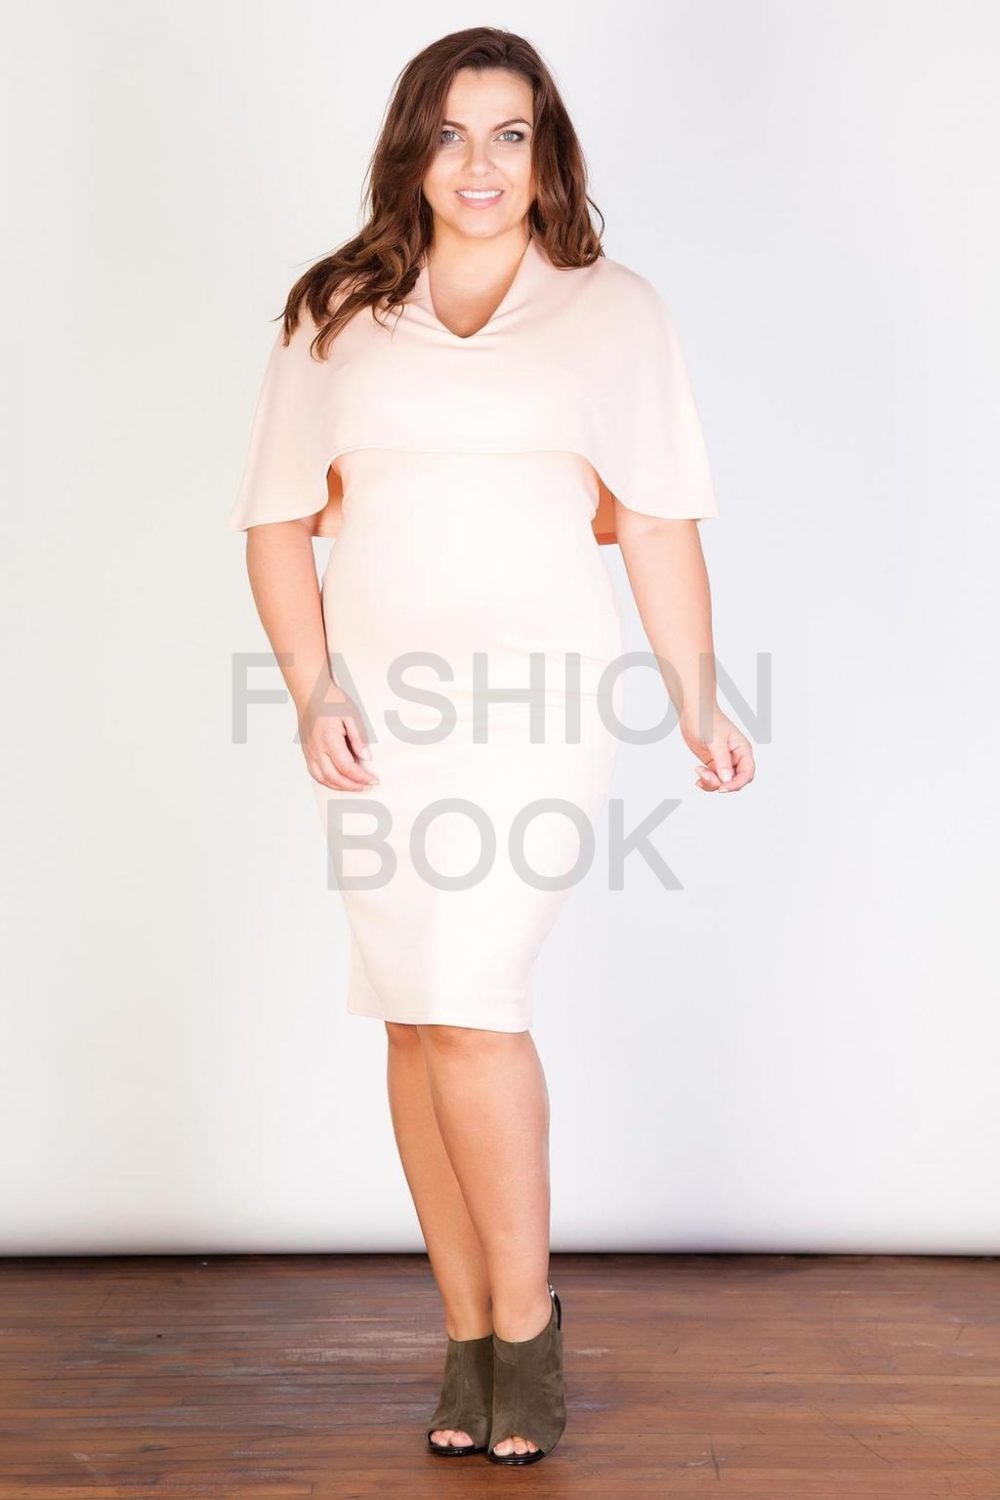 Fashionbook wholesale plus size clothing cape dress